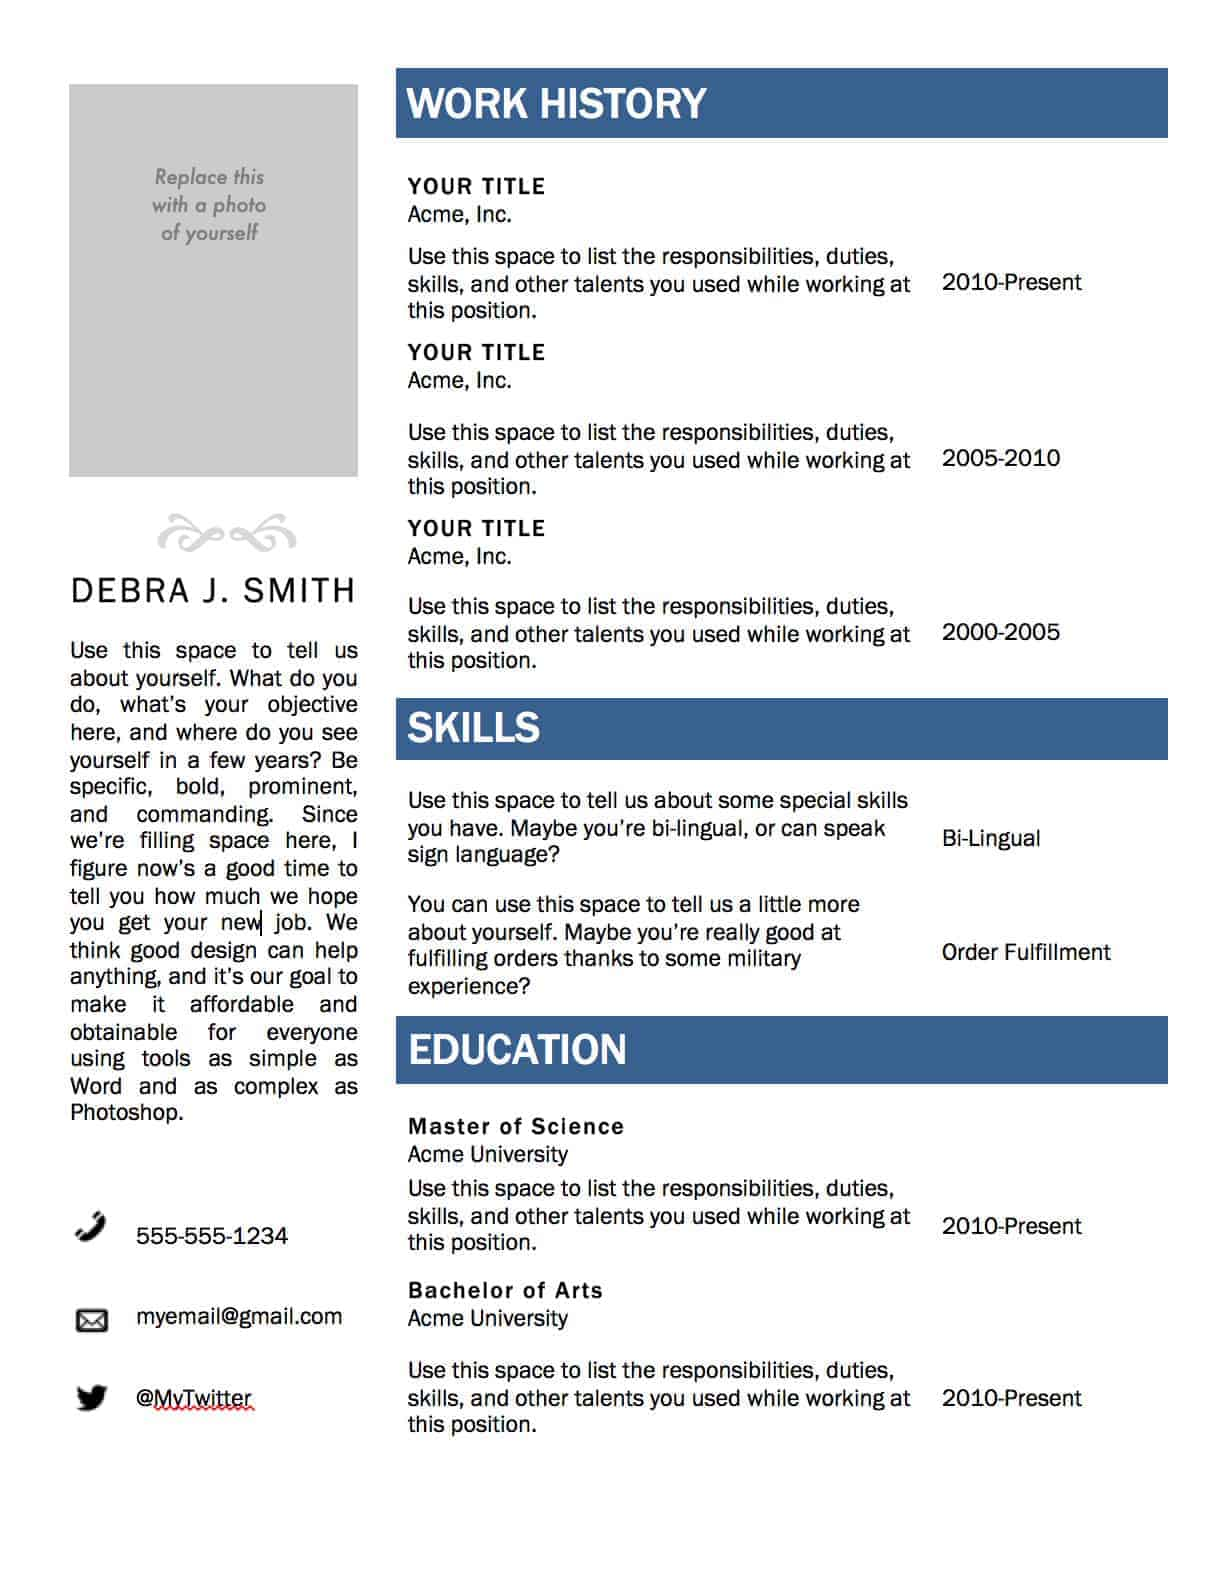 resume microsoft word templates template resume microsoft word templates - Free Resume Evaluation